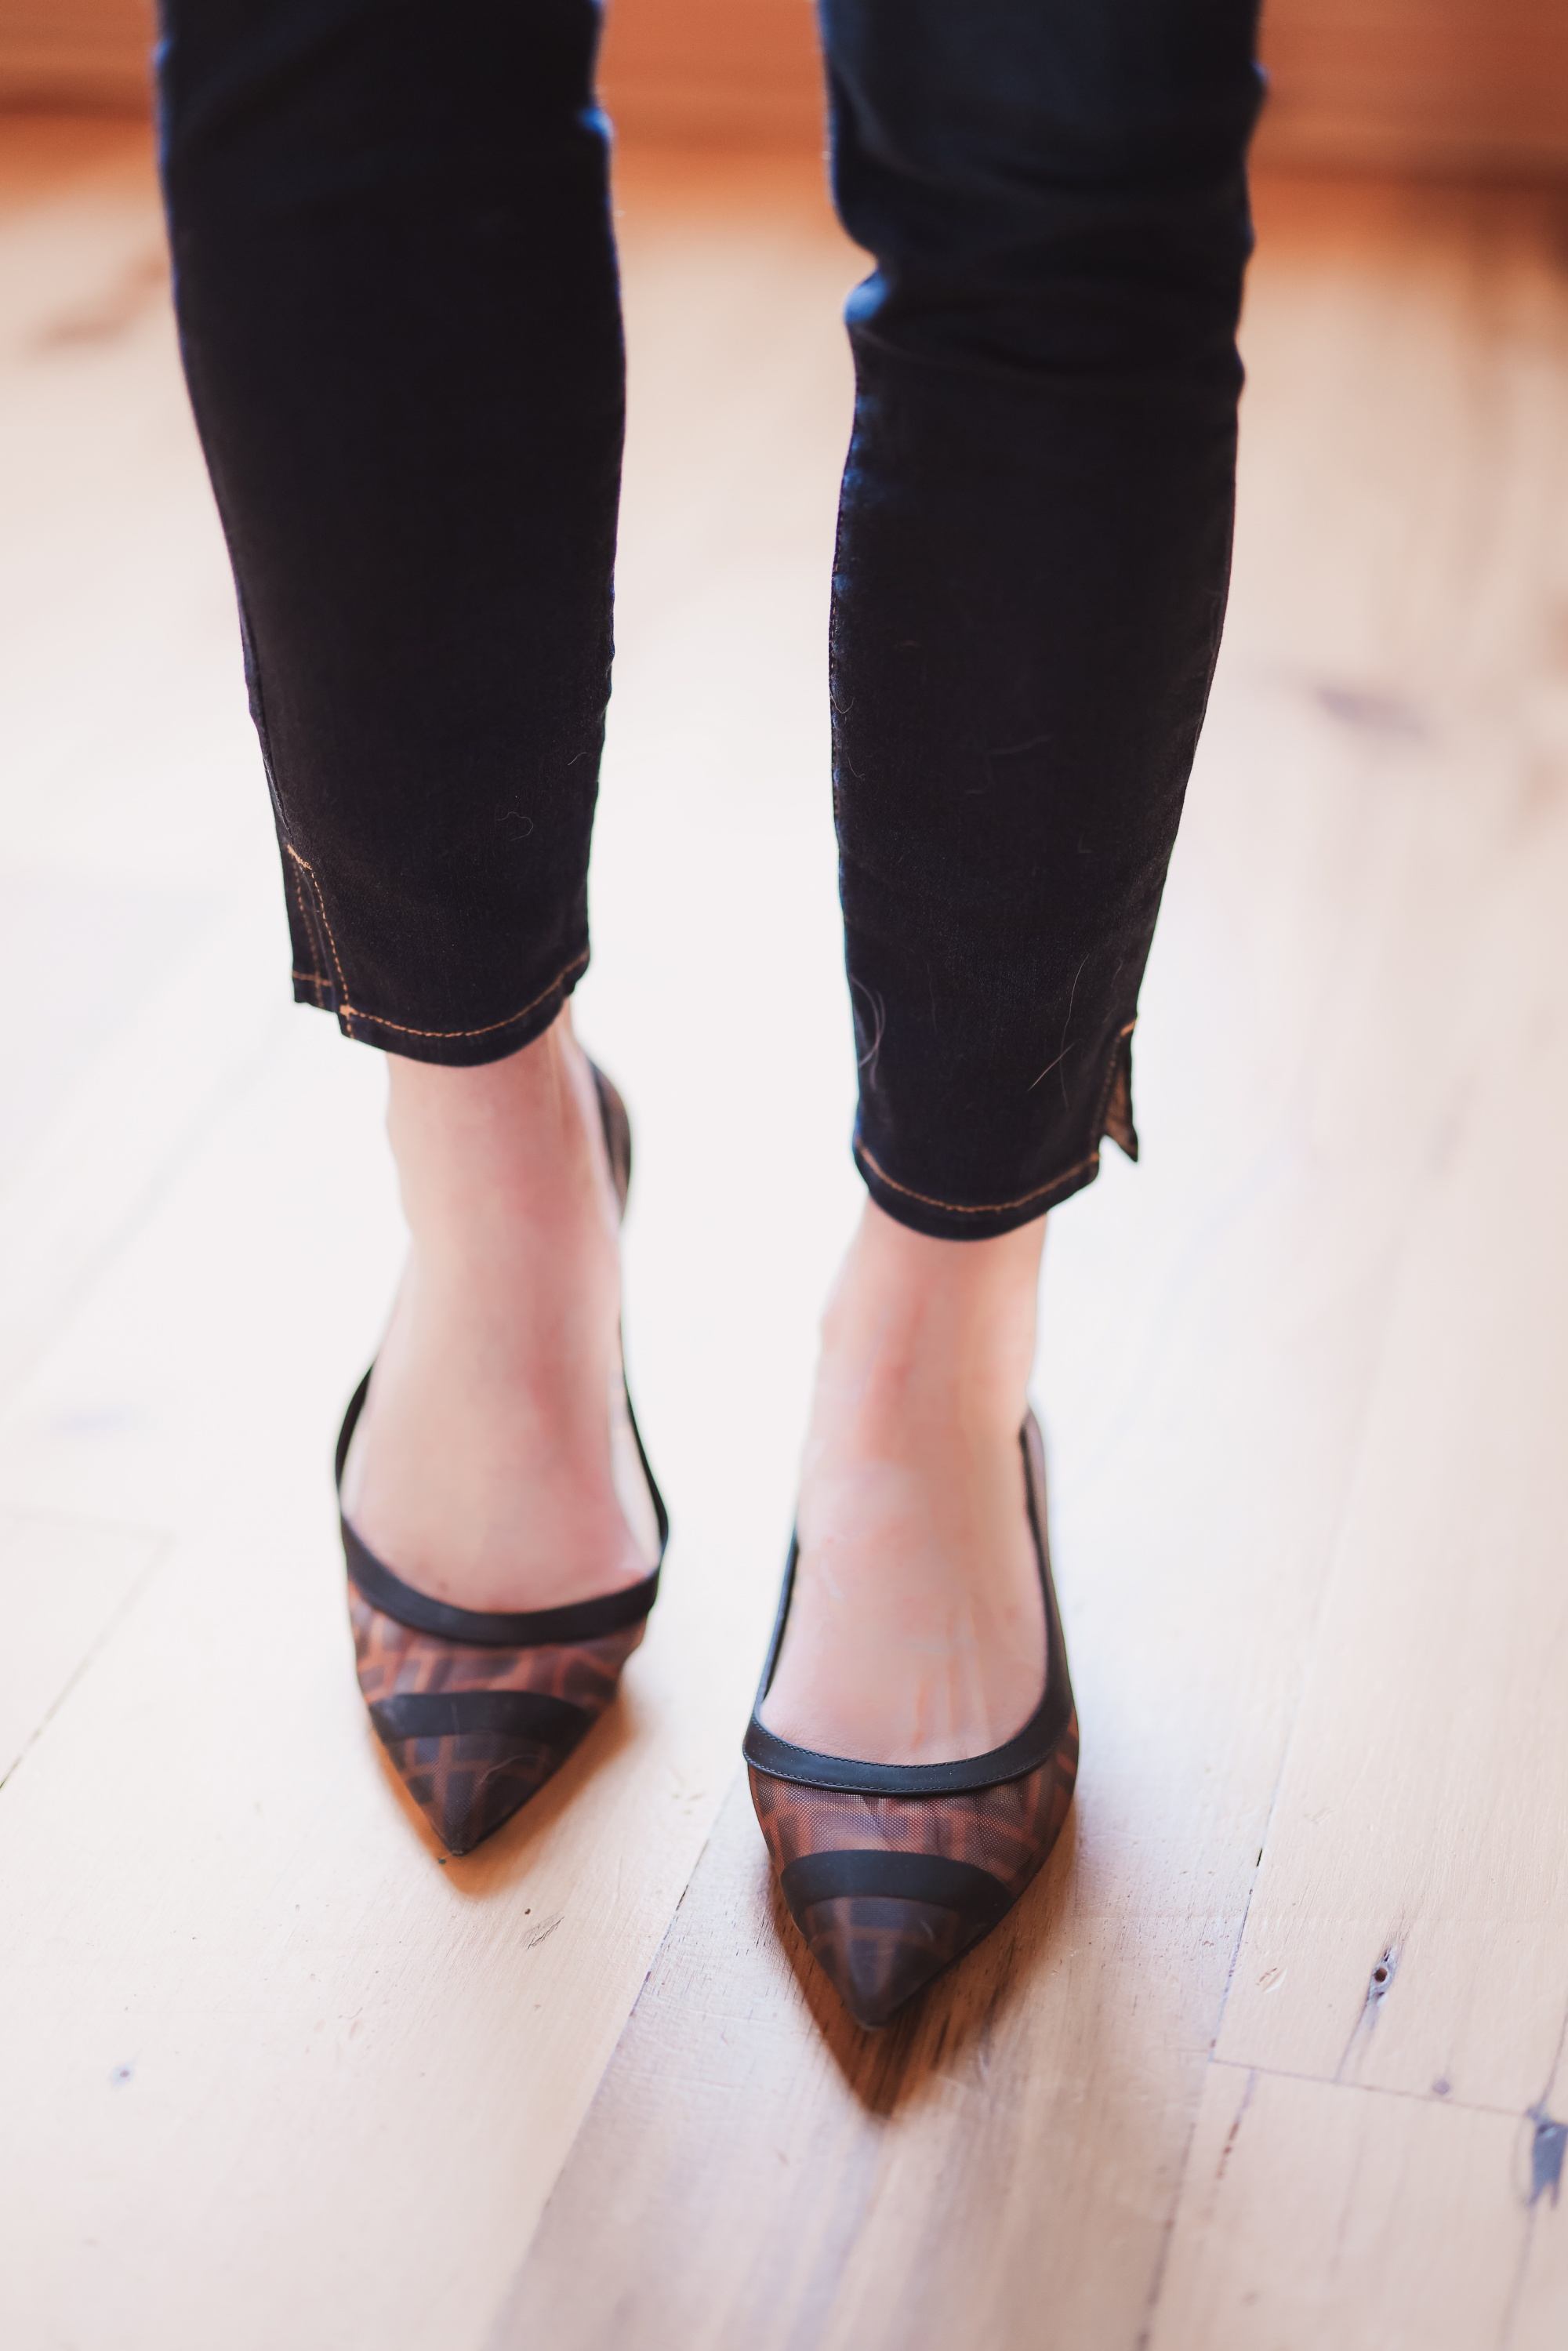 FENDI flats black and brown pointed toe ballet flats with see through Fendi logo